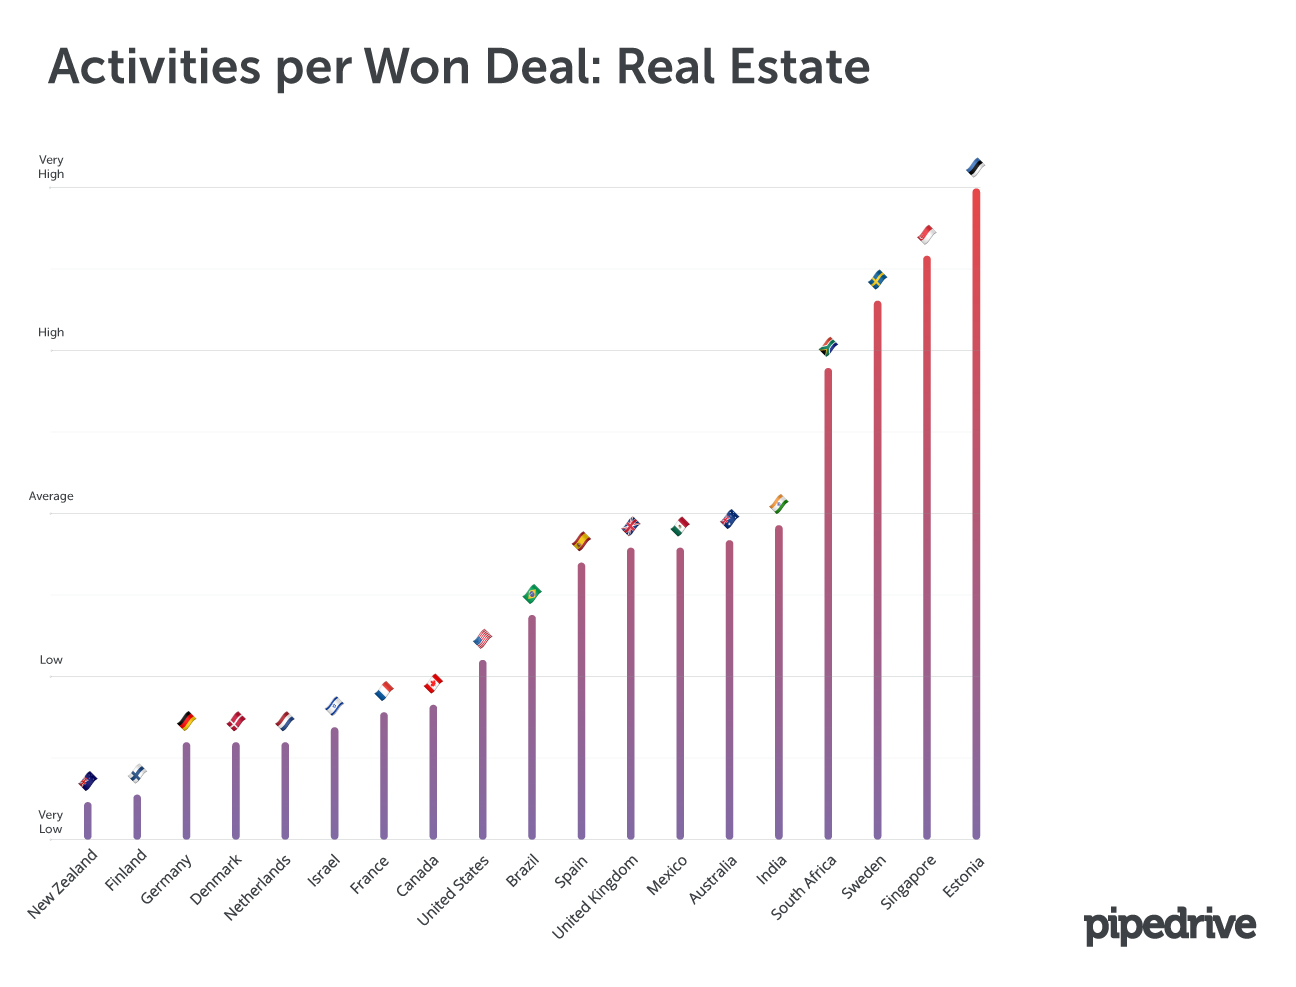 Activities per Won Deal: Real Estate